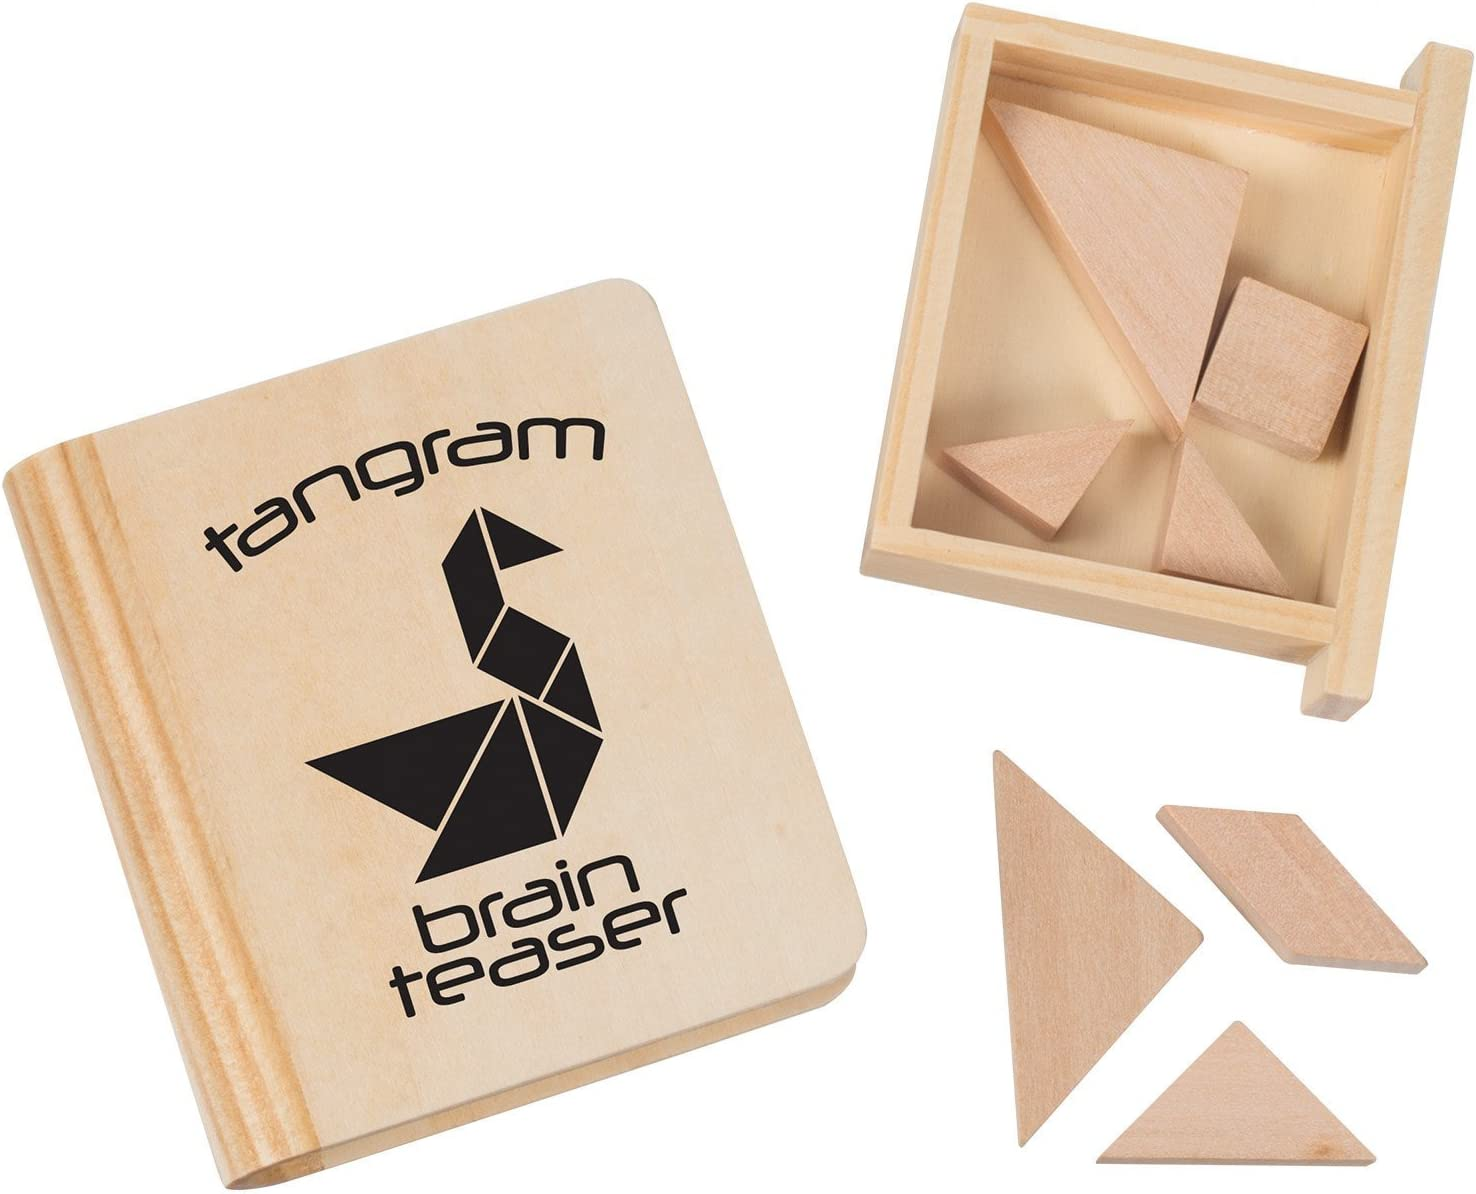 Tricky Triangle Tangram Magic Cube Jigsaw Puzzle Matching Game Set of 5 Classic Games